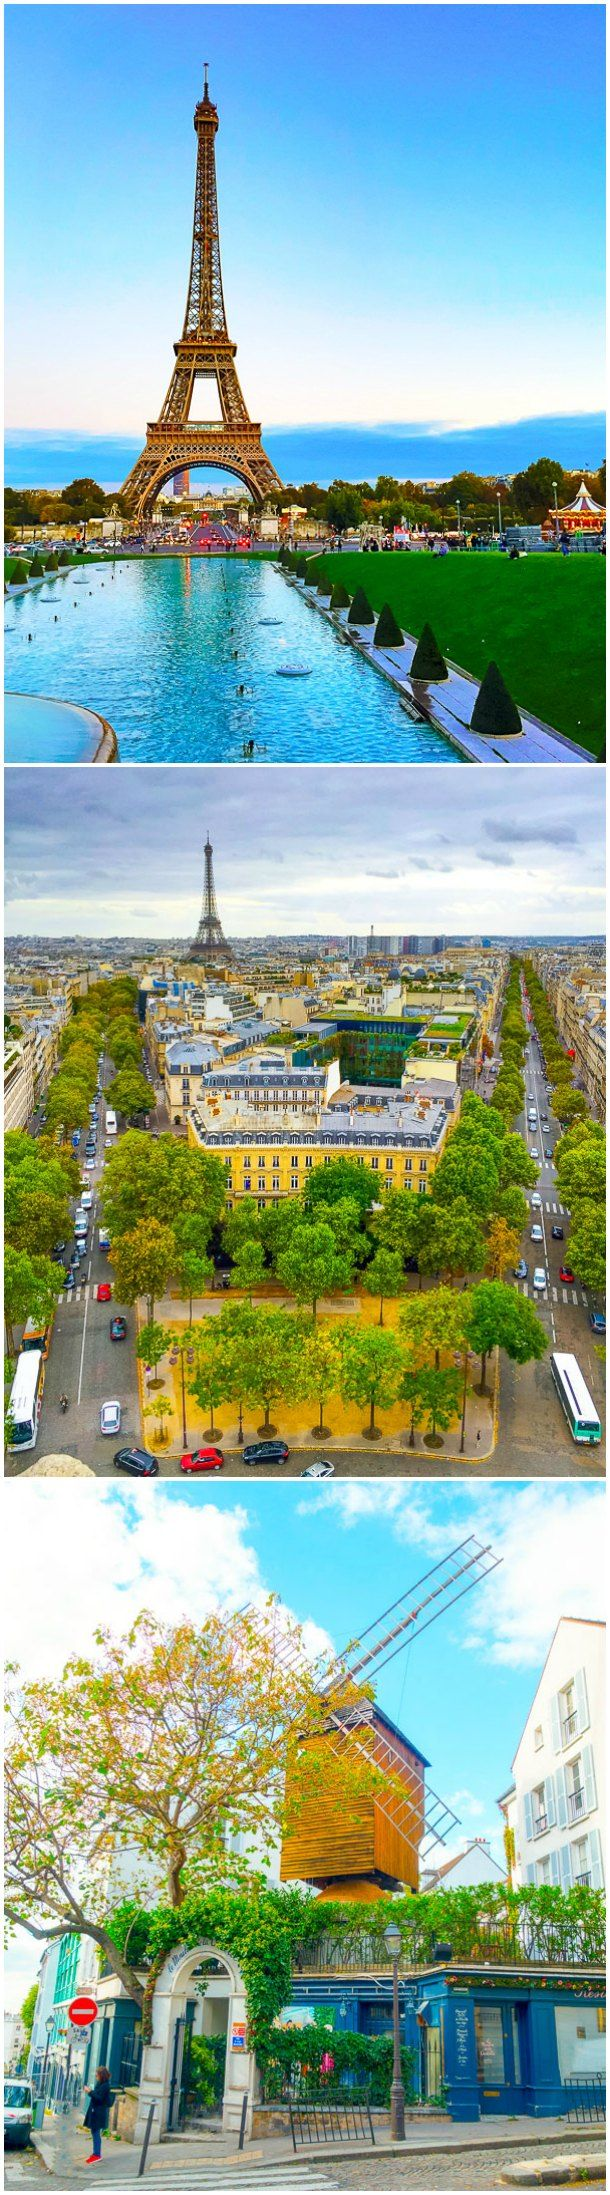 Secret Things To Do In Paris! Planning Tips for 1 Day in Paris Up to 7 Days in Paris on ASpicyPerspective.com #travel